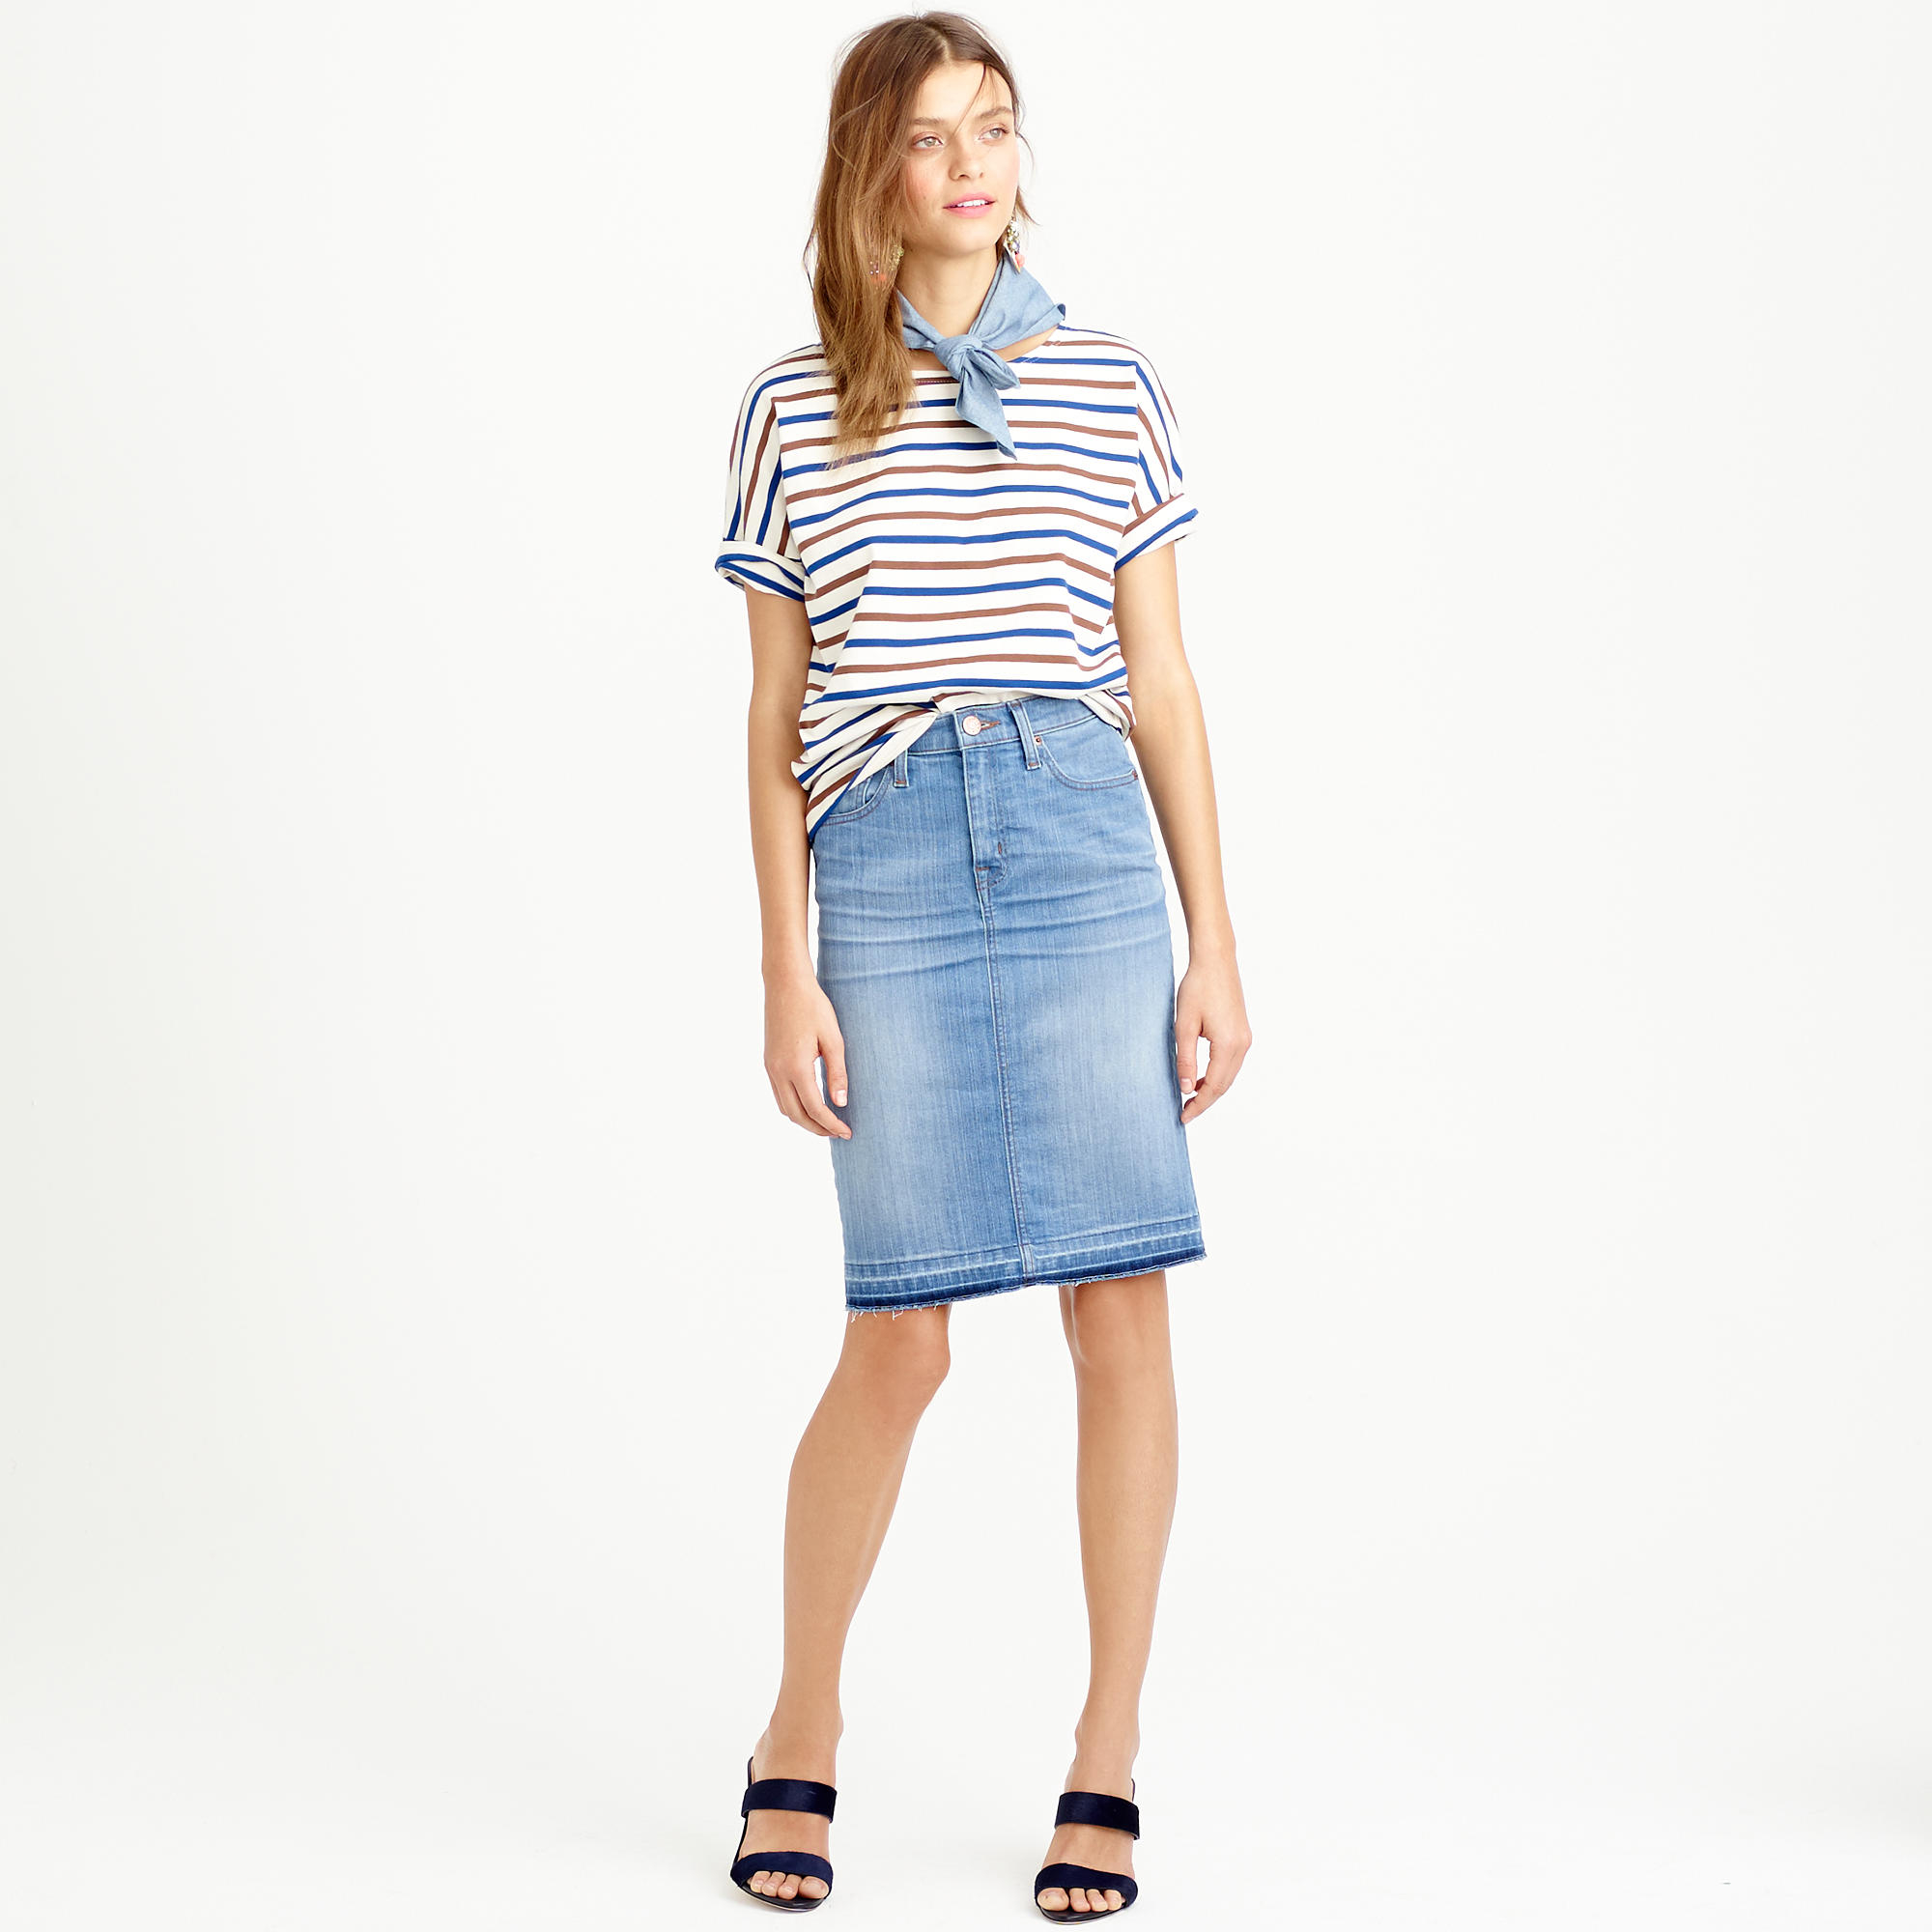 J.crew Frayed Denim Pencil Skirt in Blue | Lyst